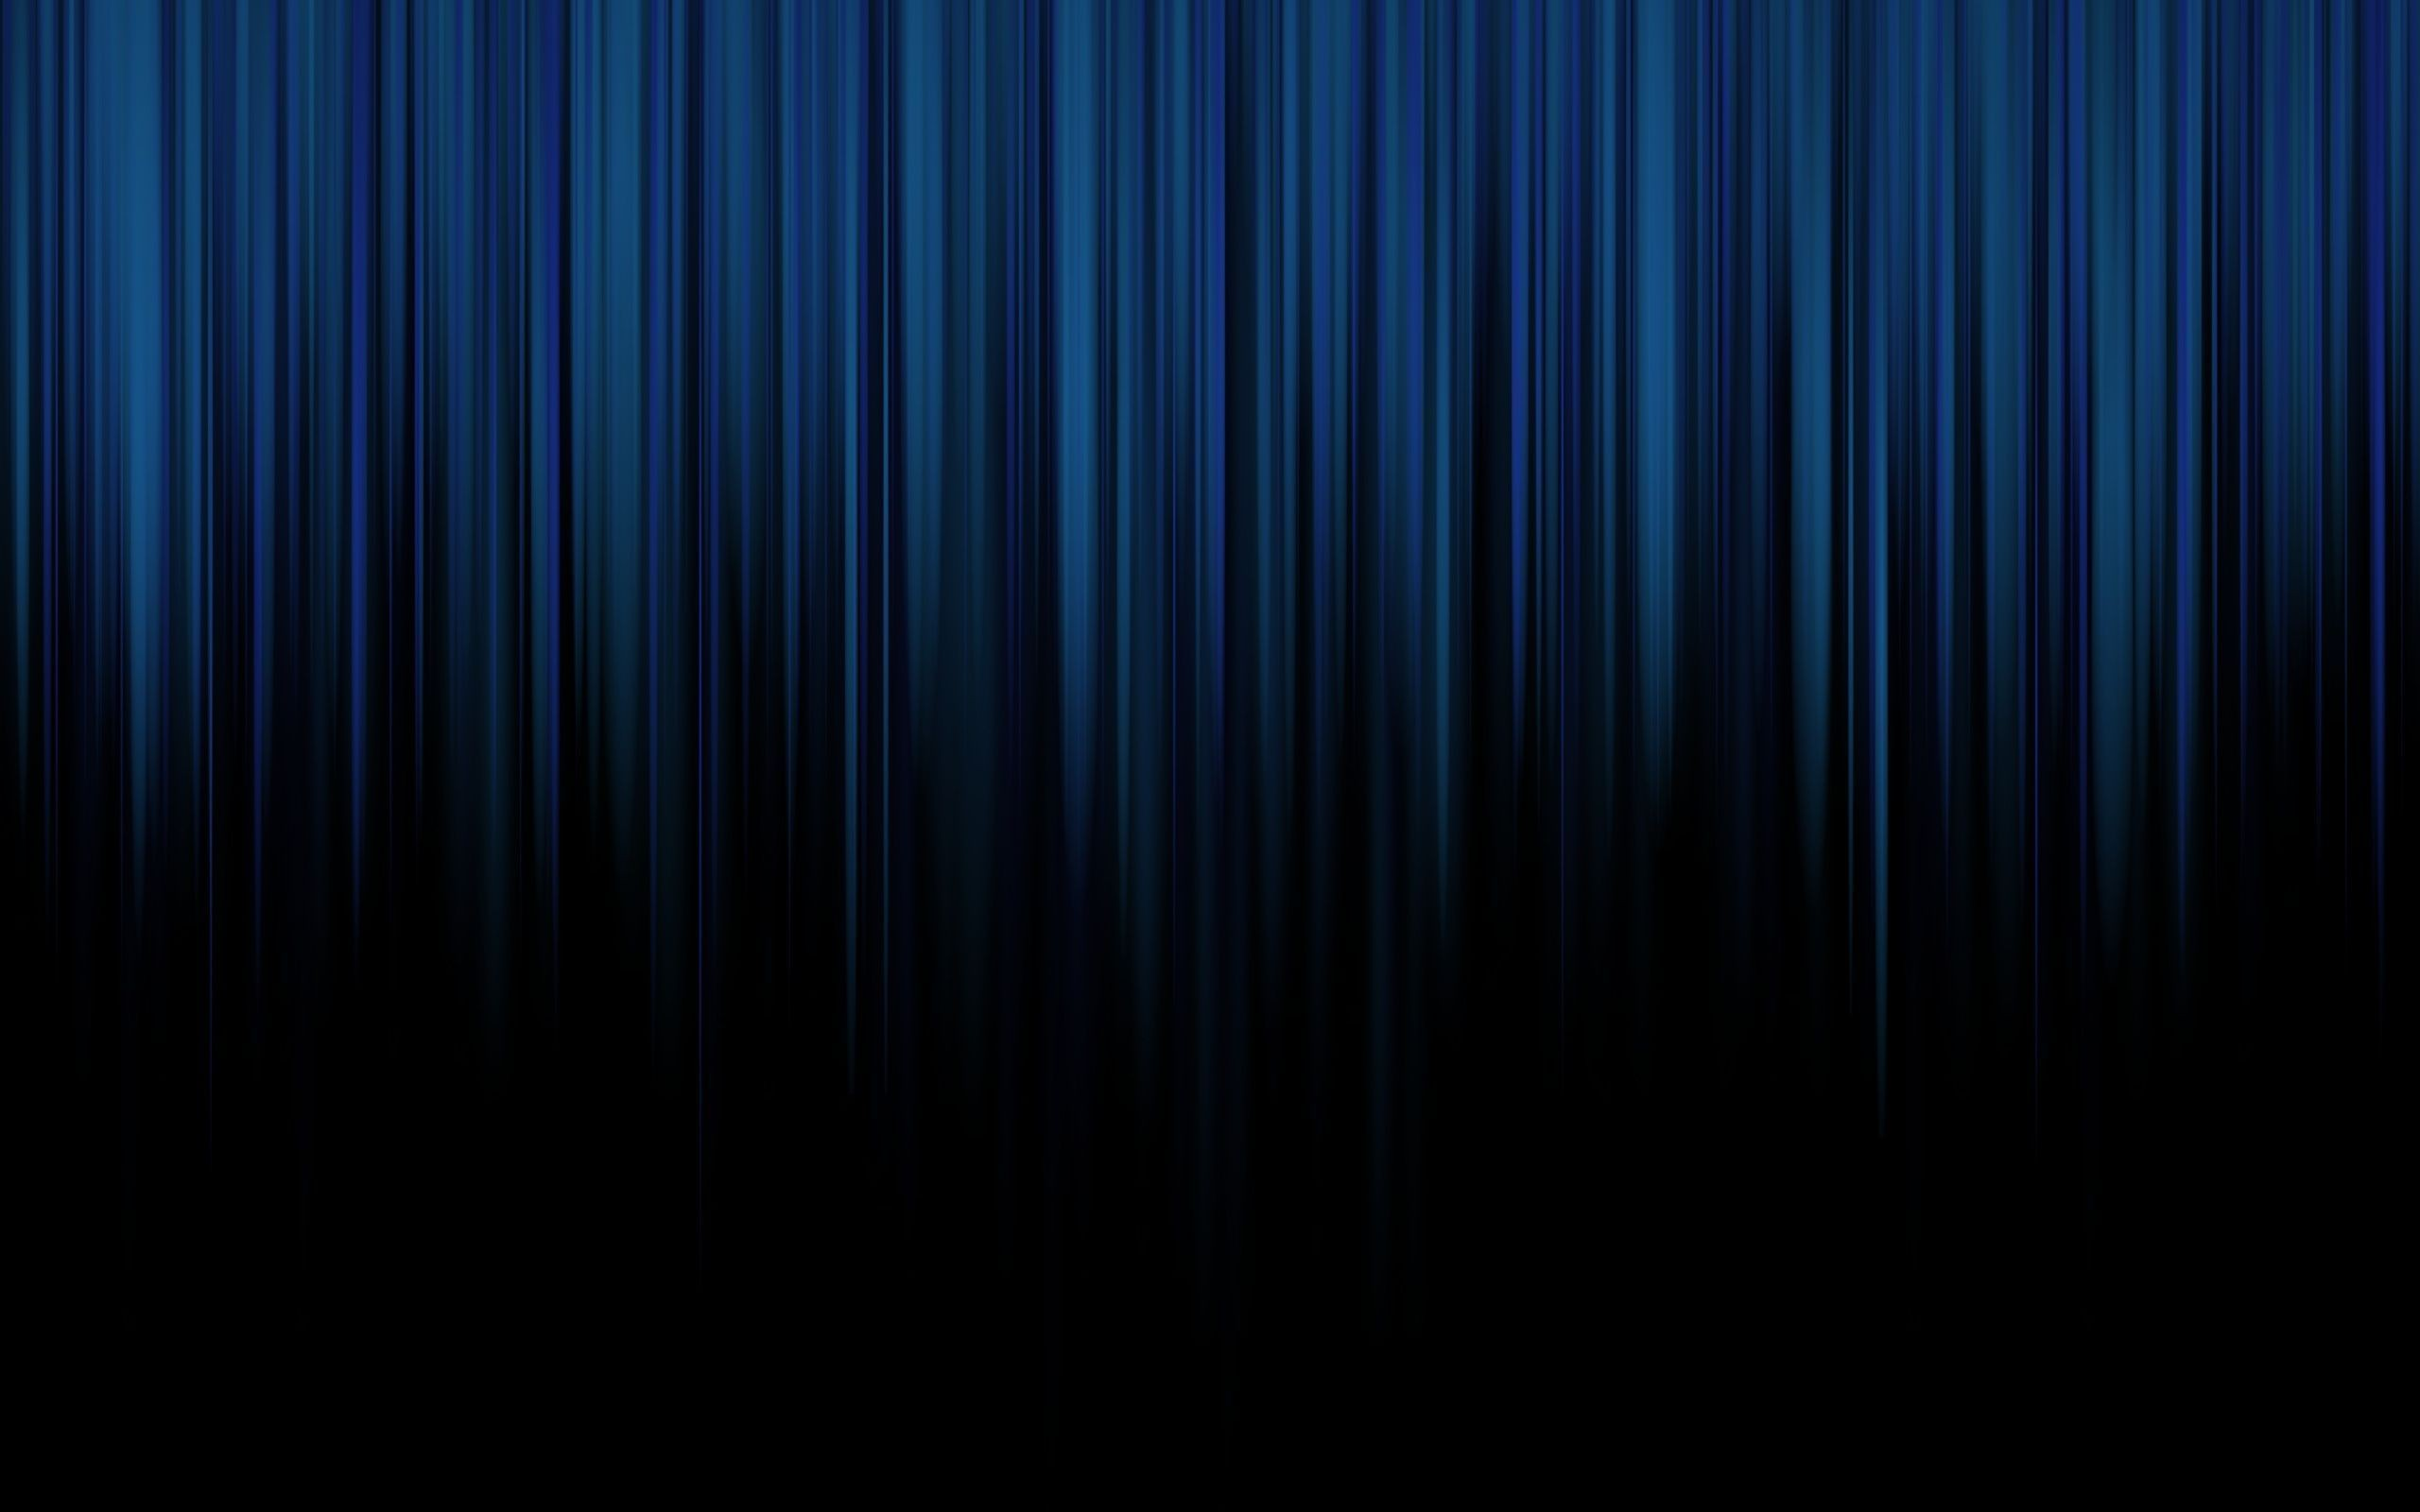 Hd Wallpaper 1920x1080 Black Blue: Black And Blue Wallpaper ·① Download Free HD Wallpapers